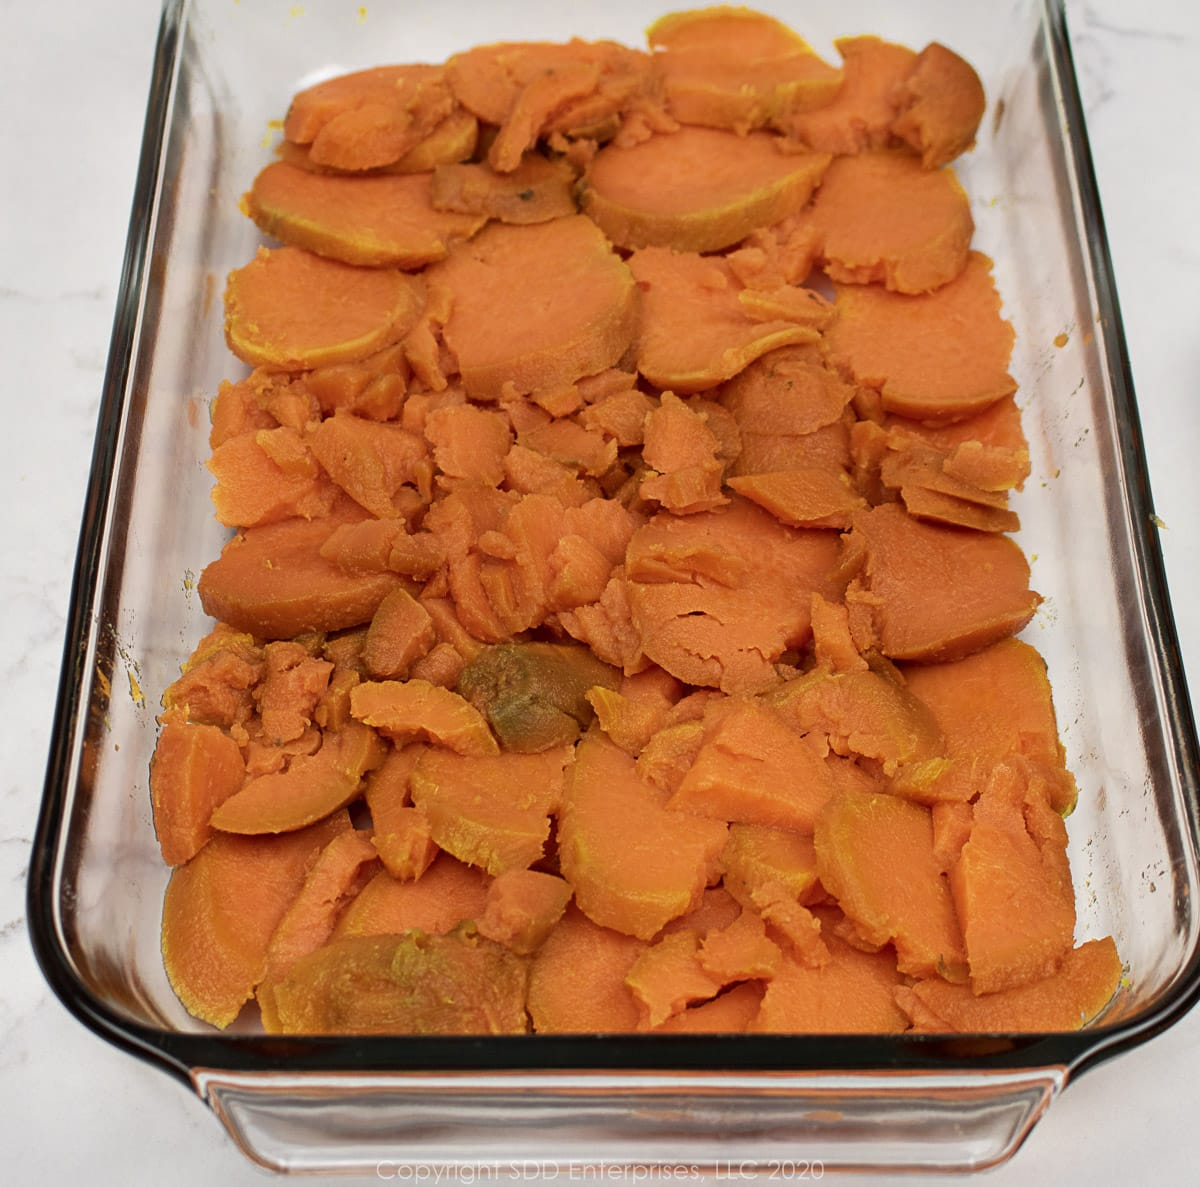 sweet potatoes laid out in a baking dish